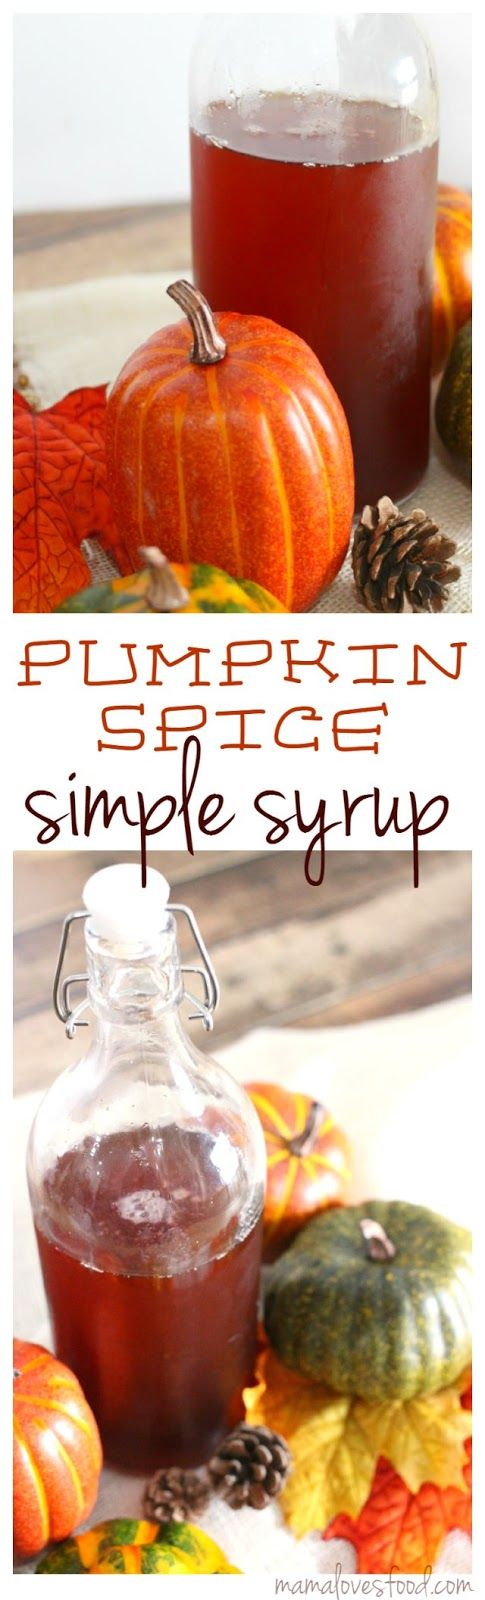 Pumpkin Spiced Simple Syrup - perfect for making Pumpkin ...